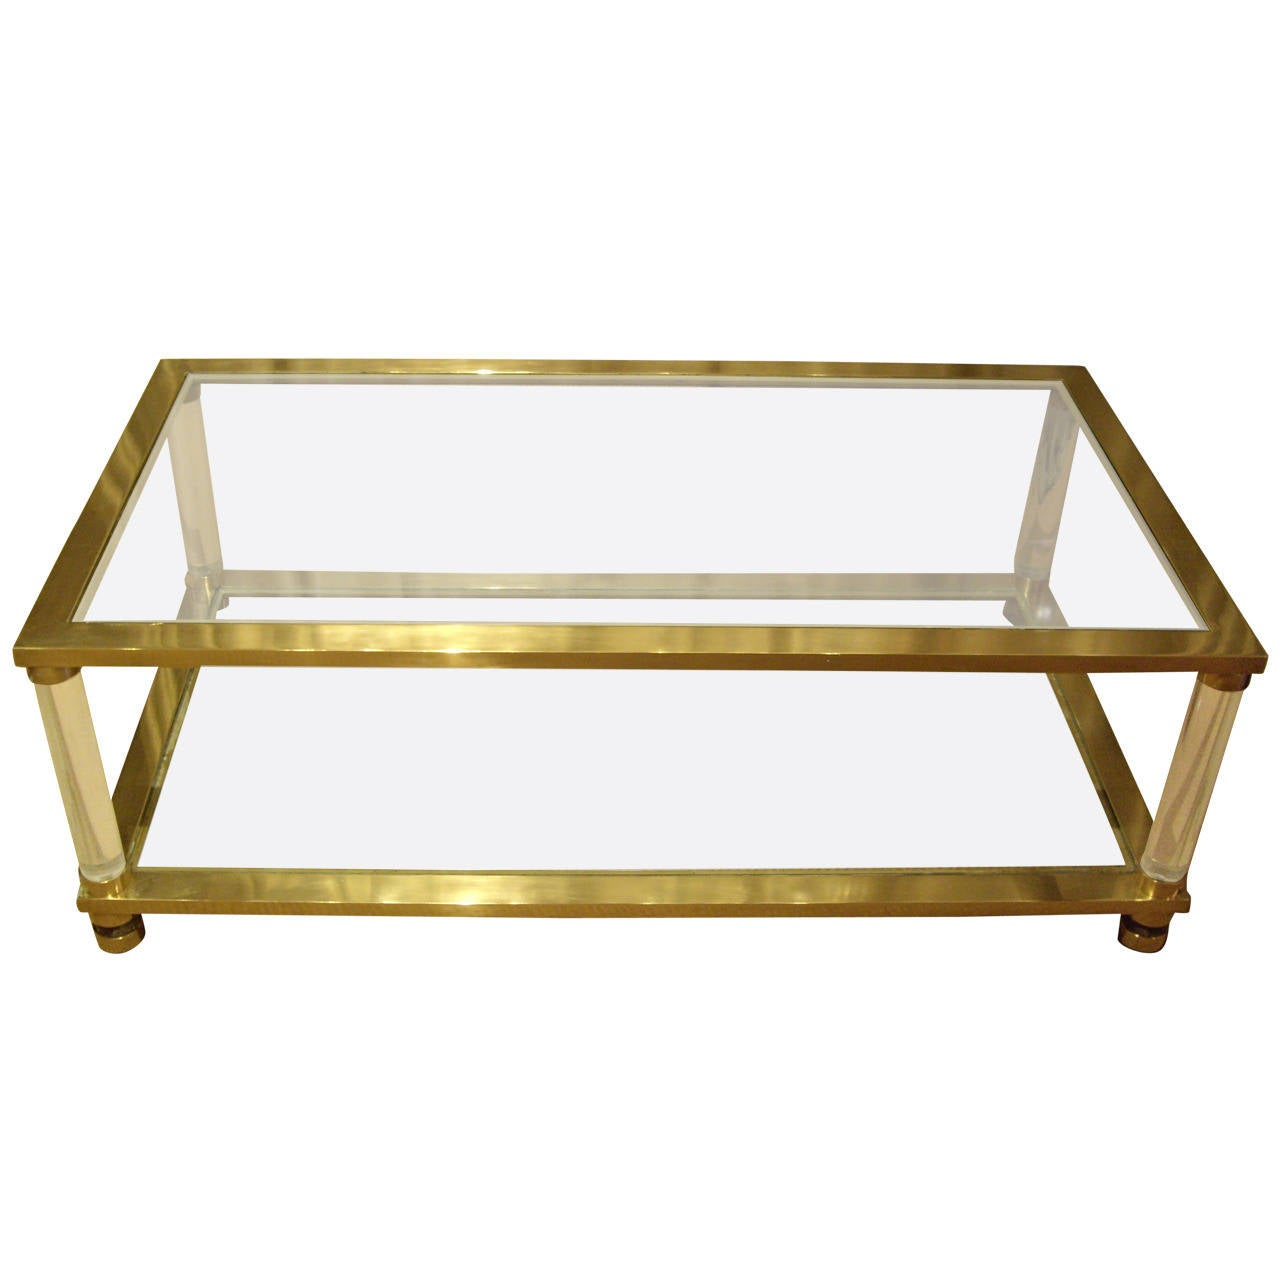 French Vintage Brass, Glass And Lucite Coffee Table At 1stdibs